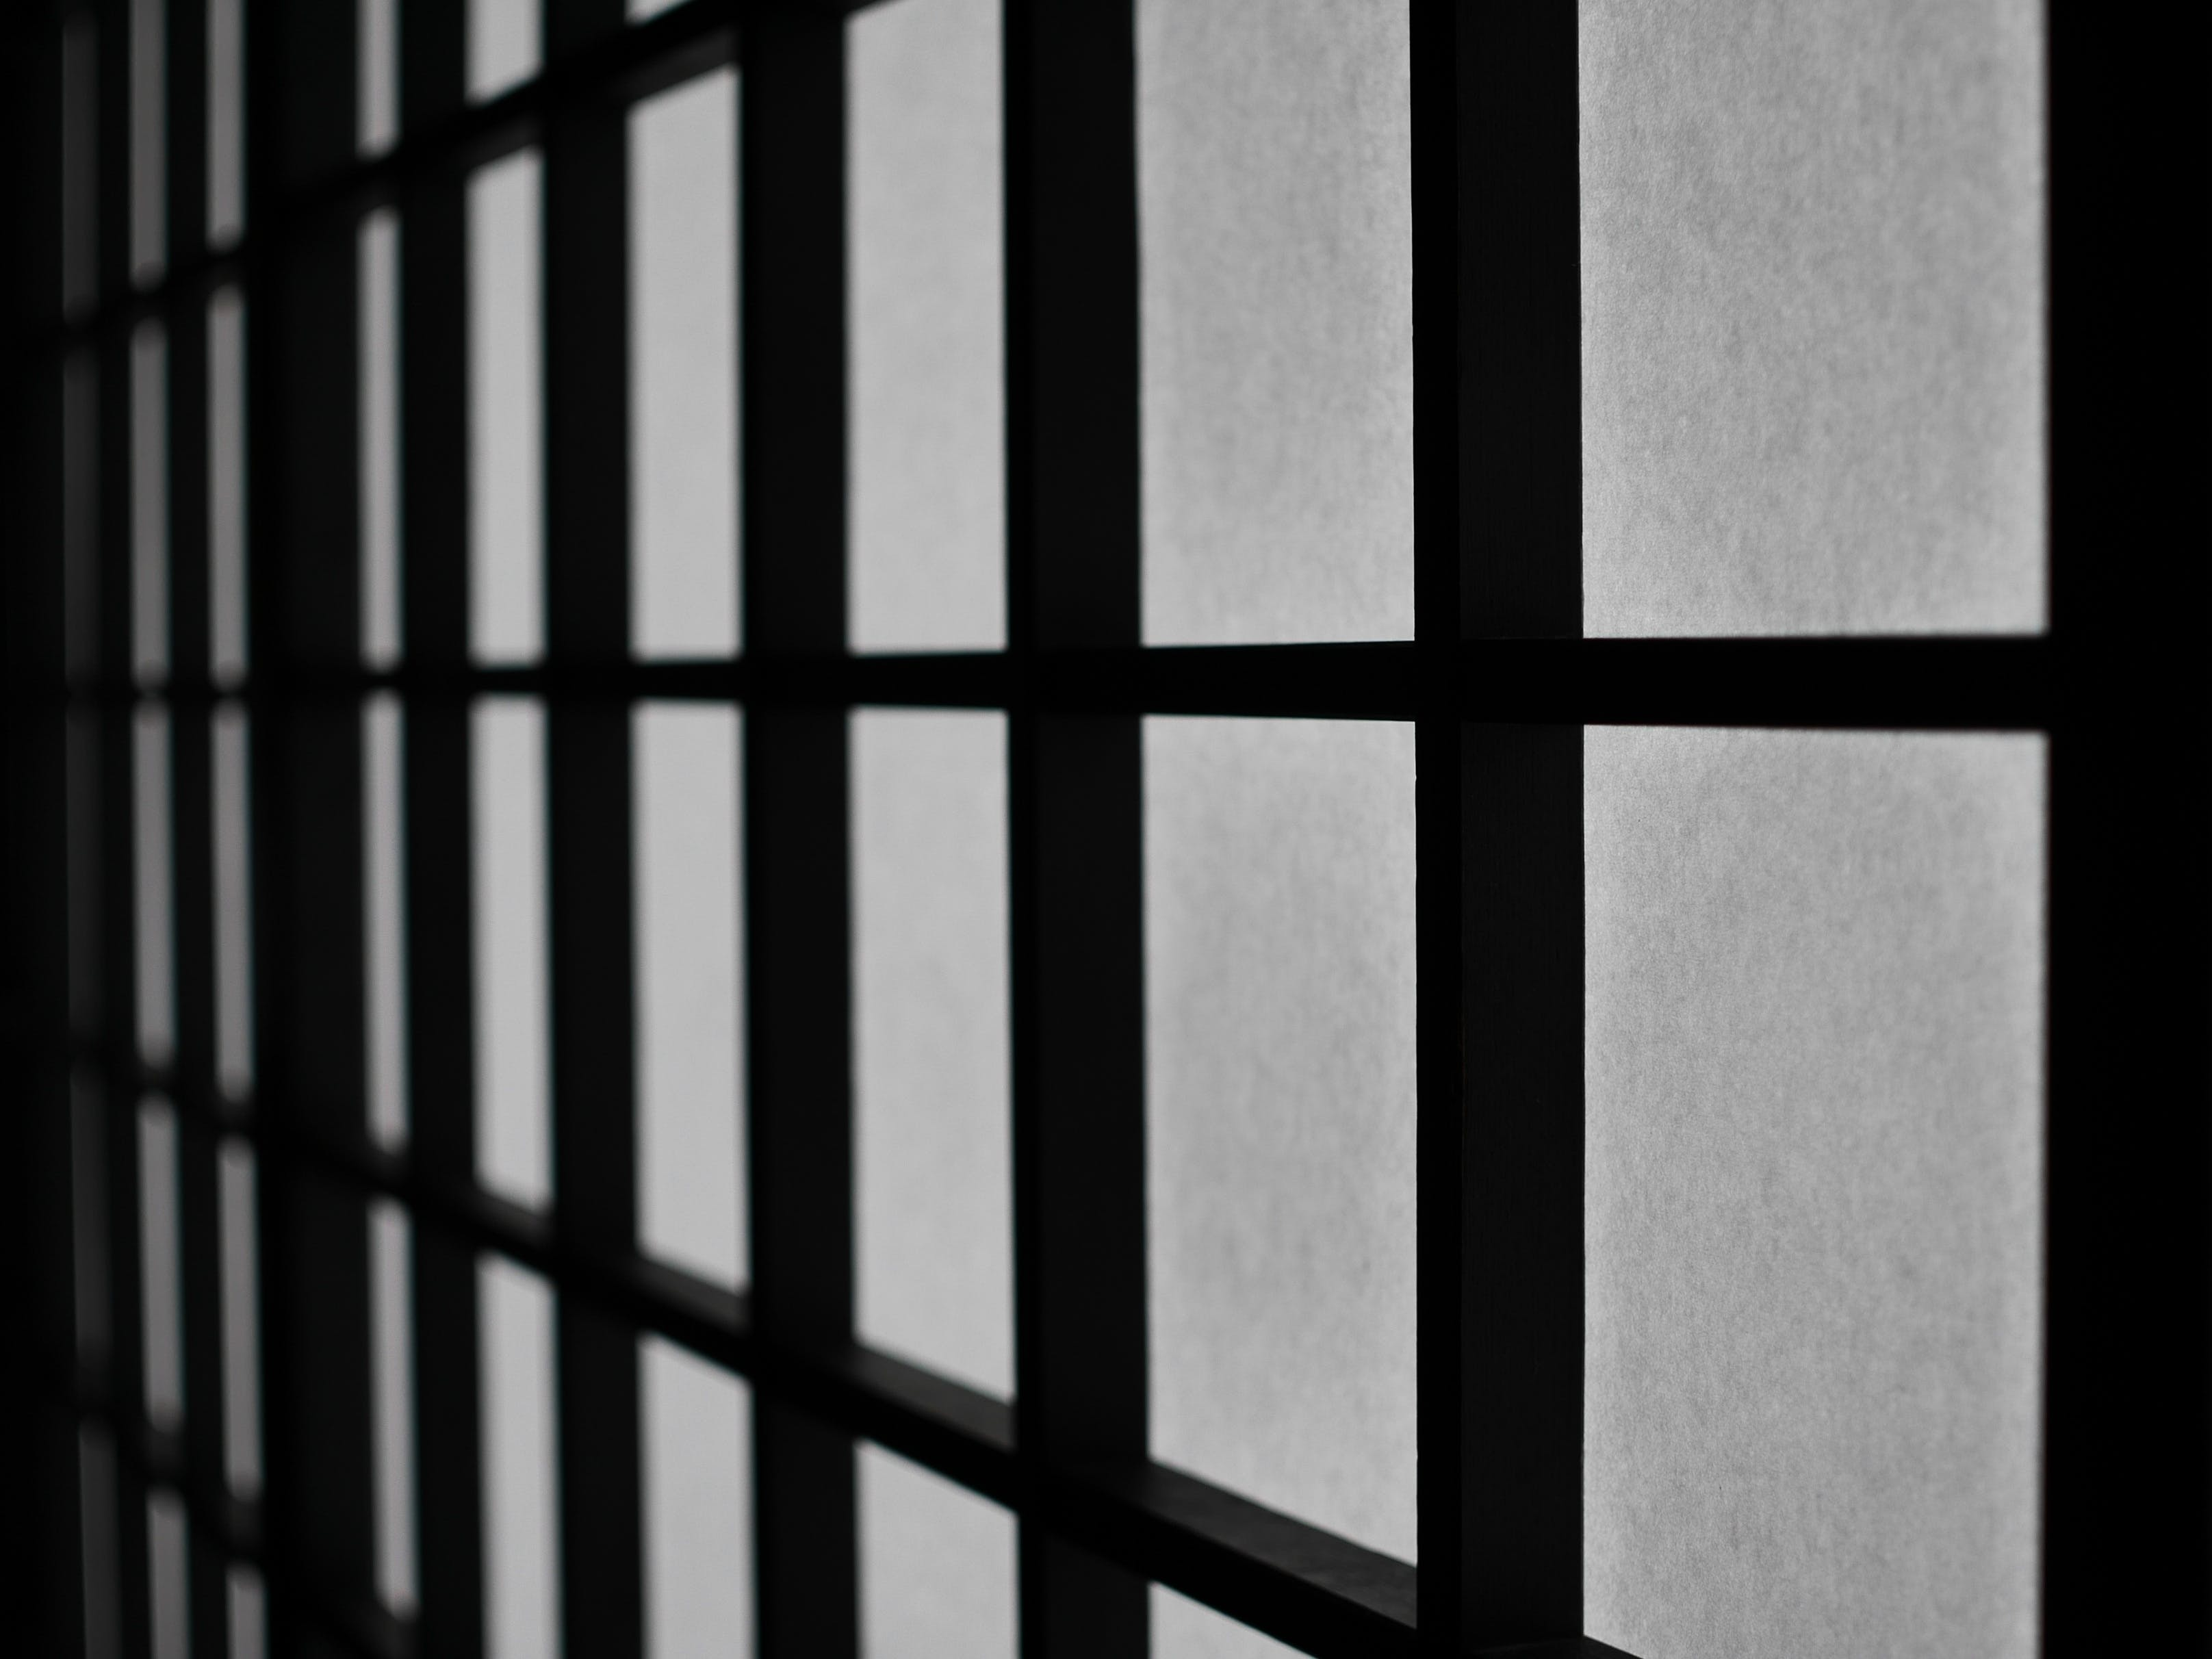 black-and-white, pattern, squares